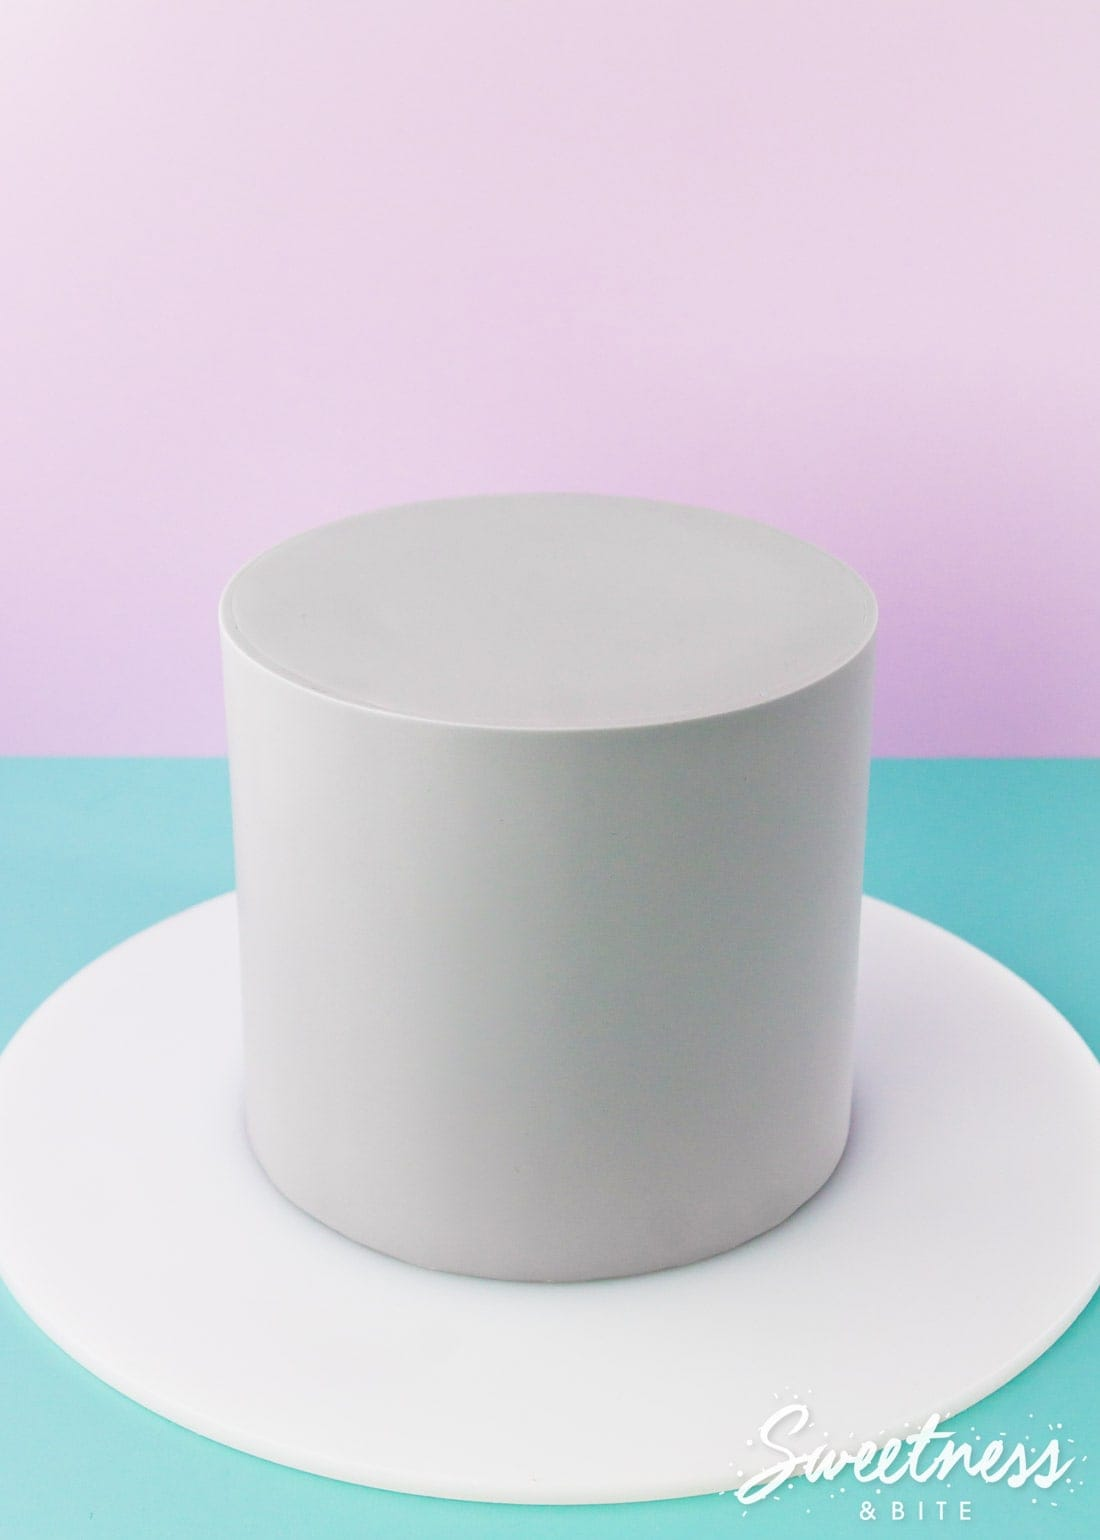 How to Wrap a Cake With Fondant - A Step-By-Step Tutorial For Covering Cakes With Fondant Using The Wrapping Method, For Super Sharp Edges ~ Sweetness & Bite